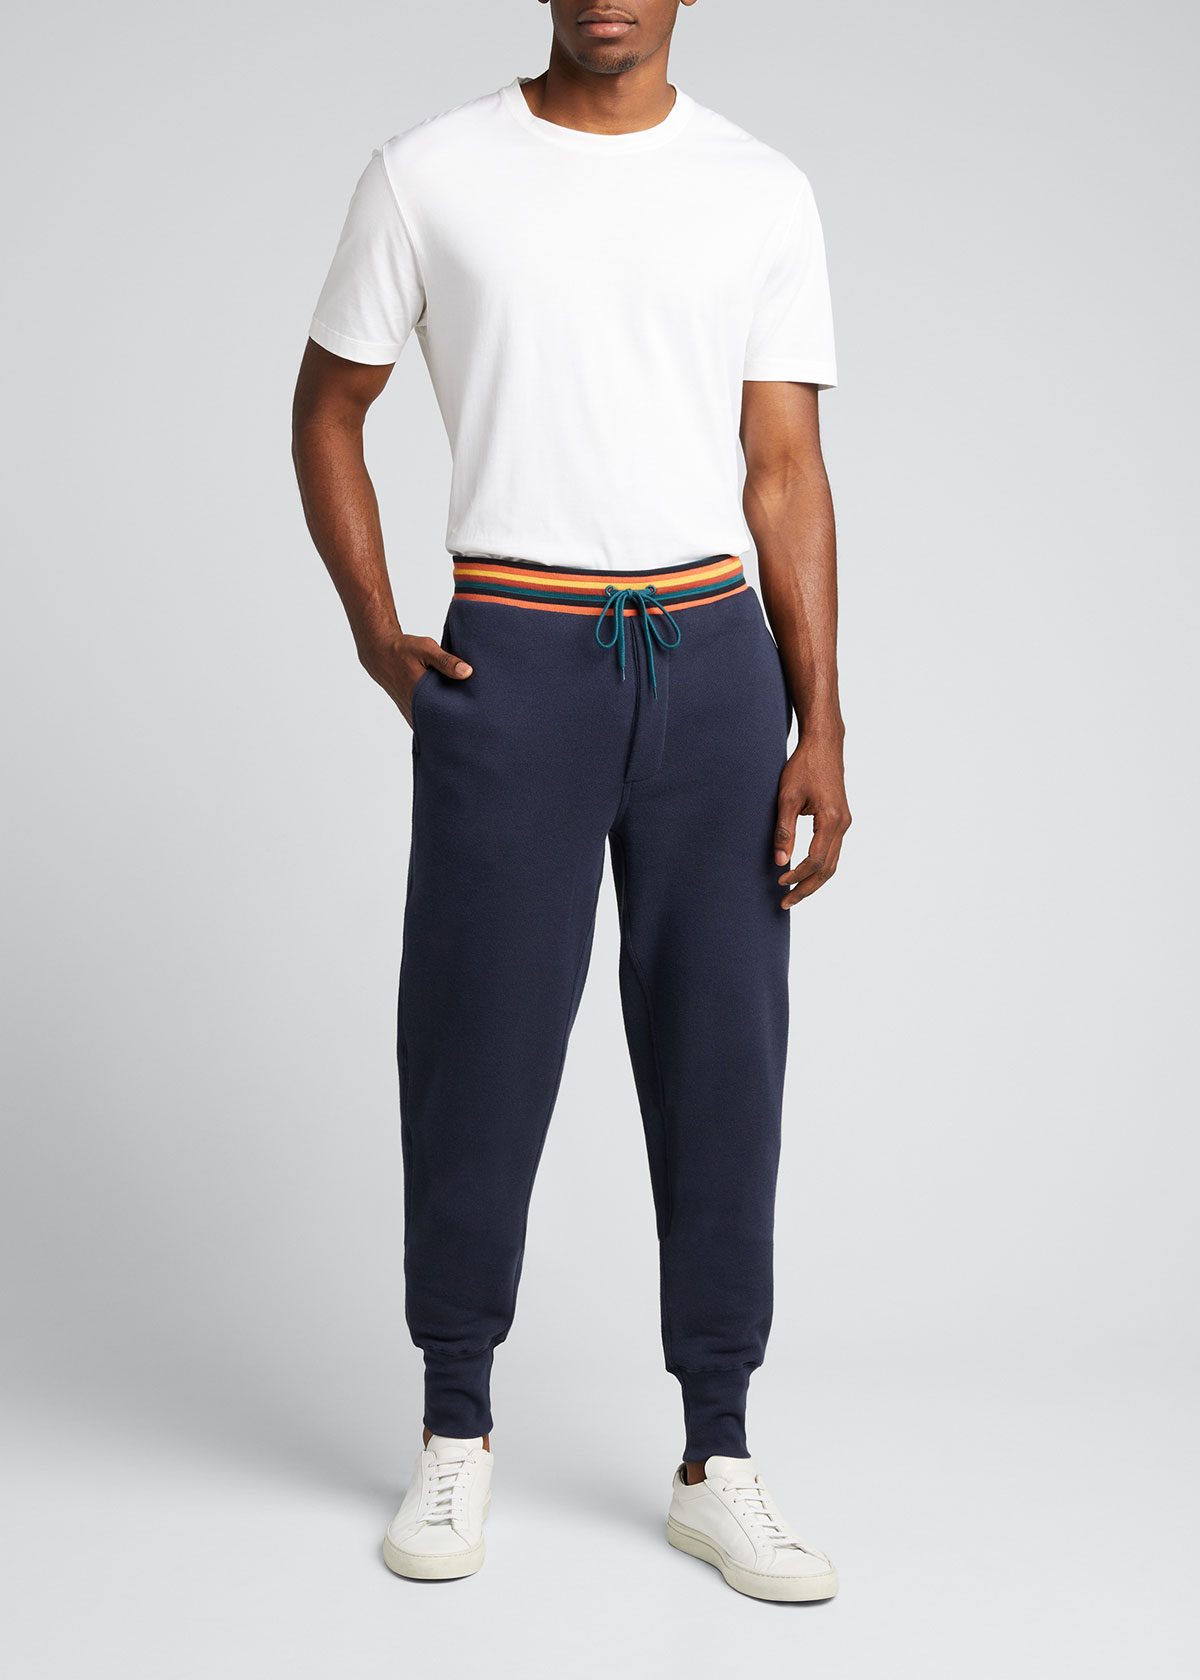 Paul Smith MEN'S JERSEY JOGGER PANTS W/ STRIPED WAIST